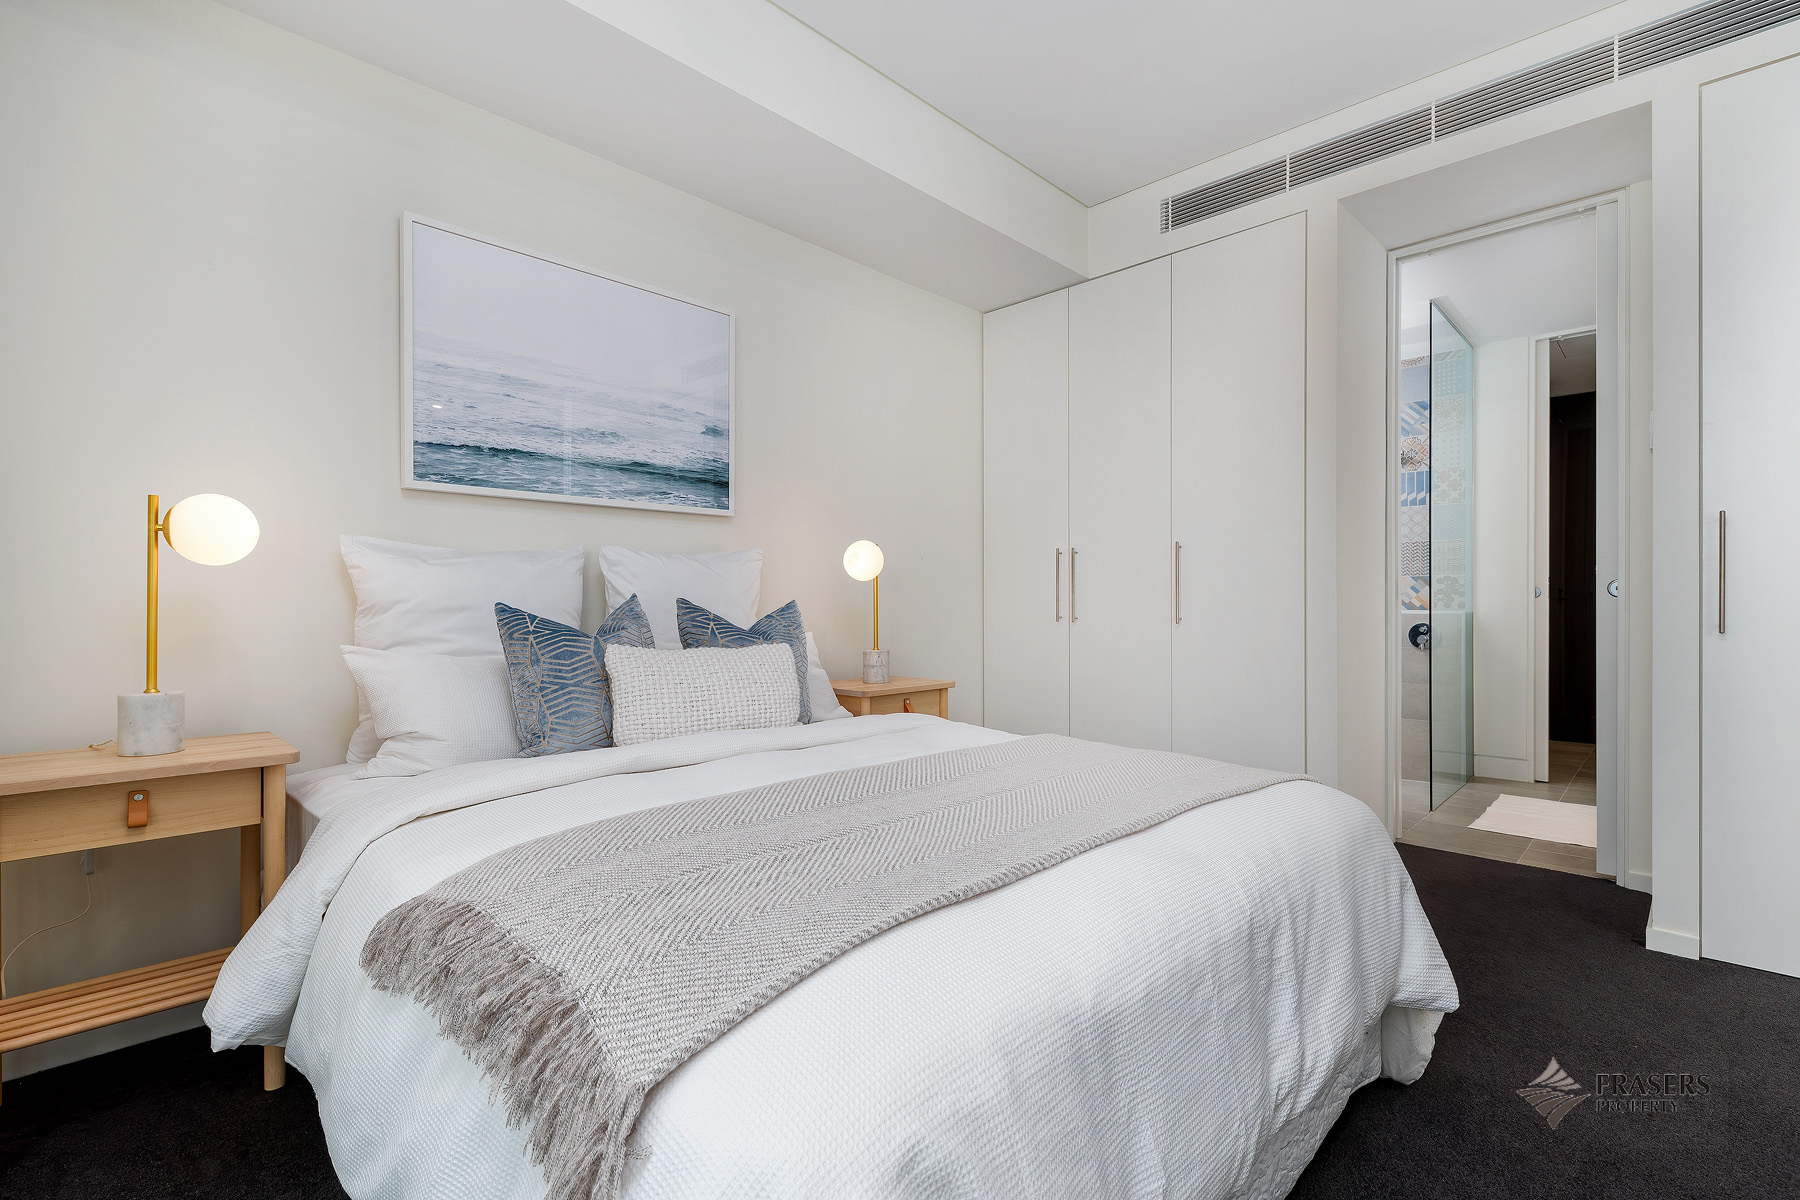 Bedroom at Riverside Parade Apartments by Fraser, Centre, Perth